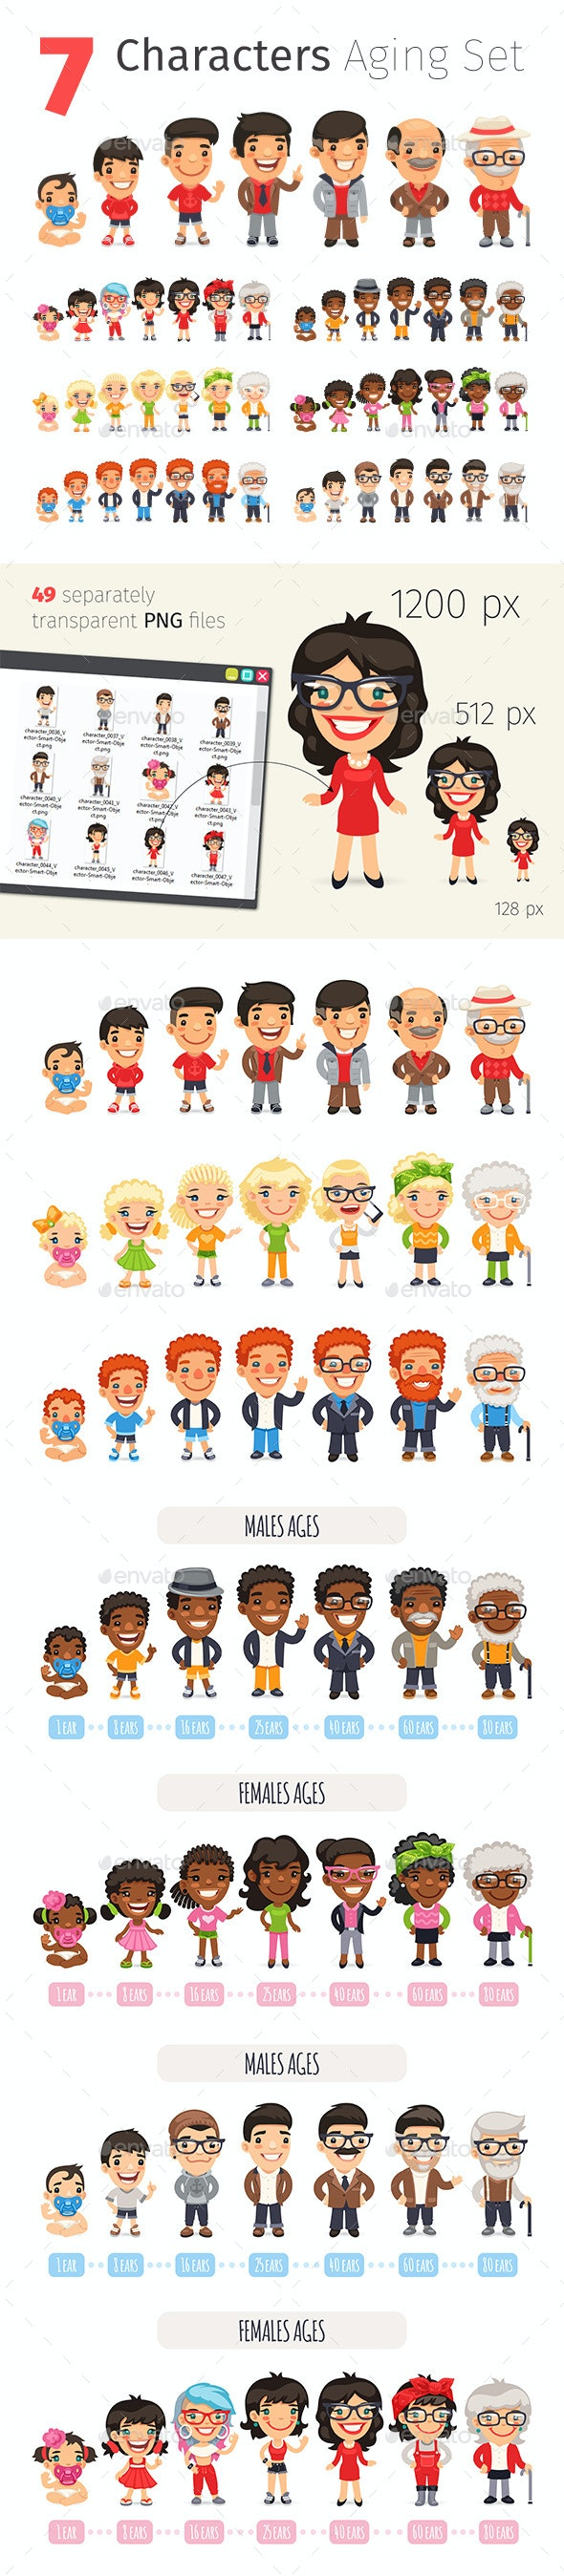 Seven Characters Aging Set - People Characters